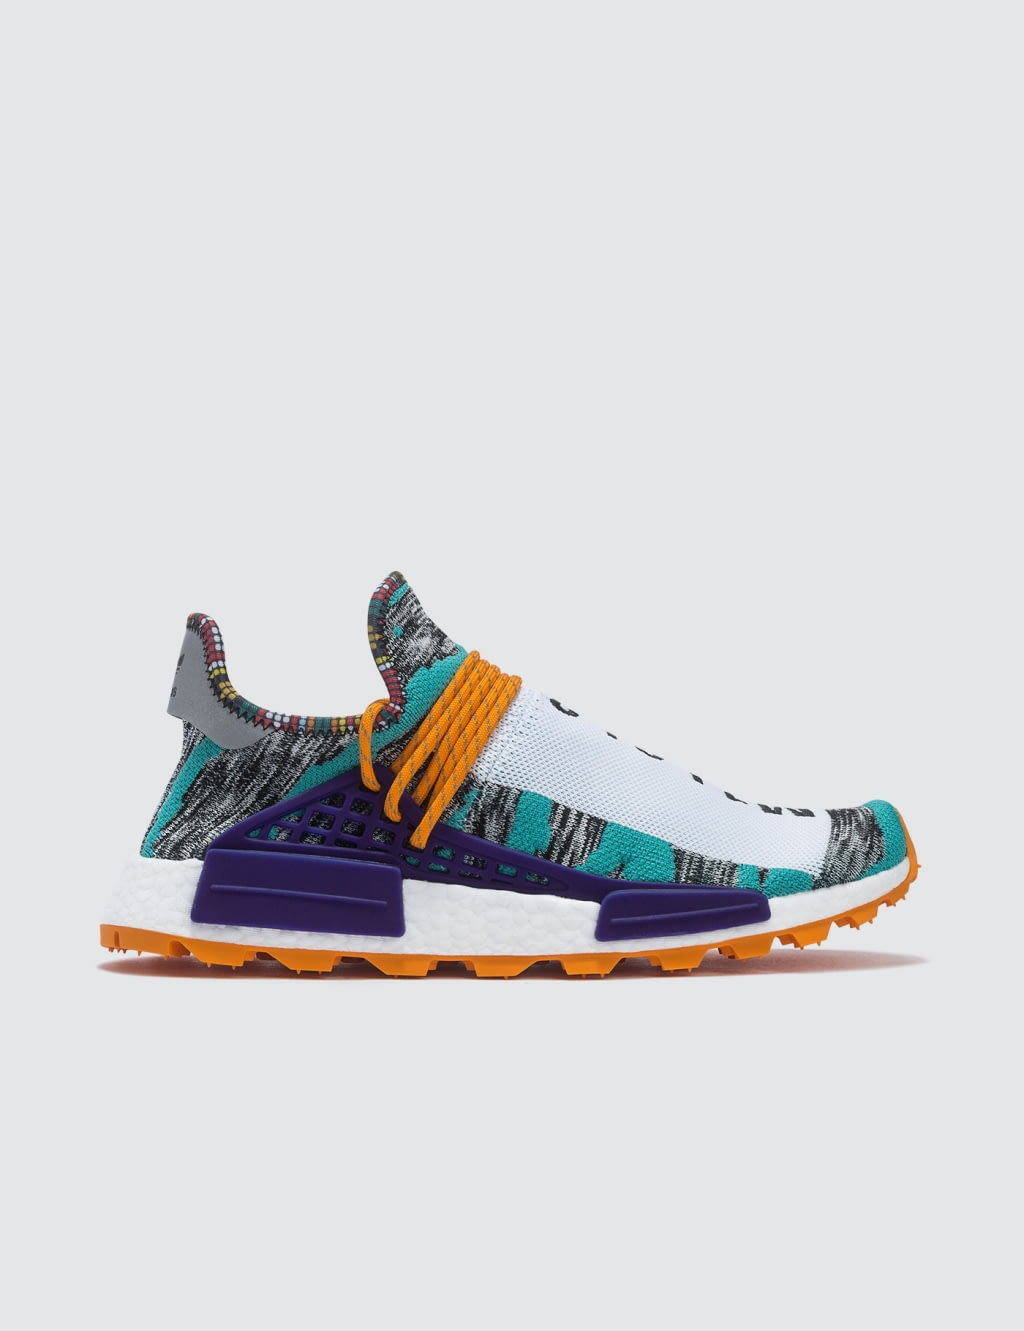 new concept c9640 313d6 Comprar Original x Adidas Originals Pharrell Williams x Original Adidas  Solar HU 6662a9